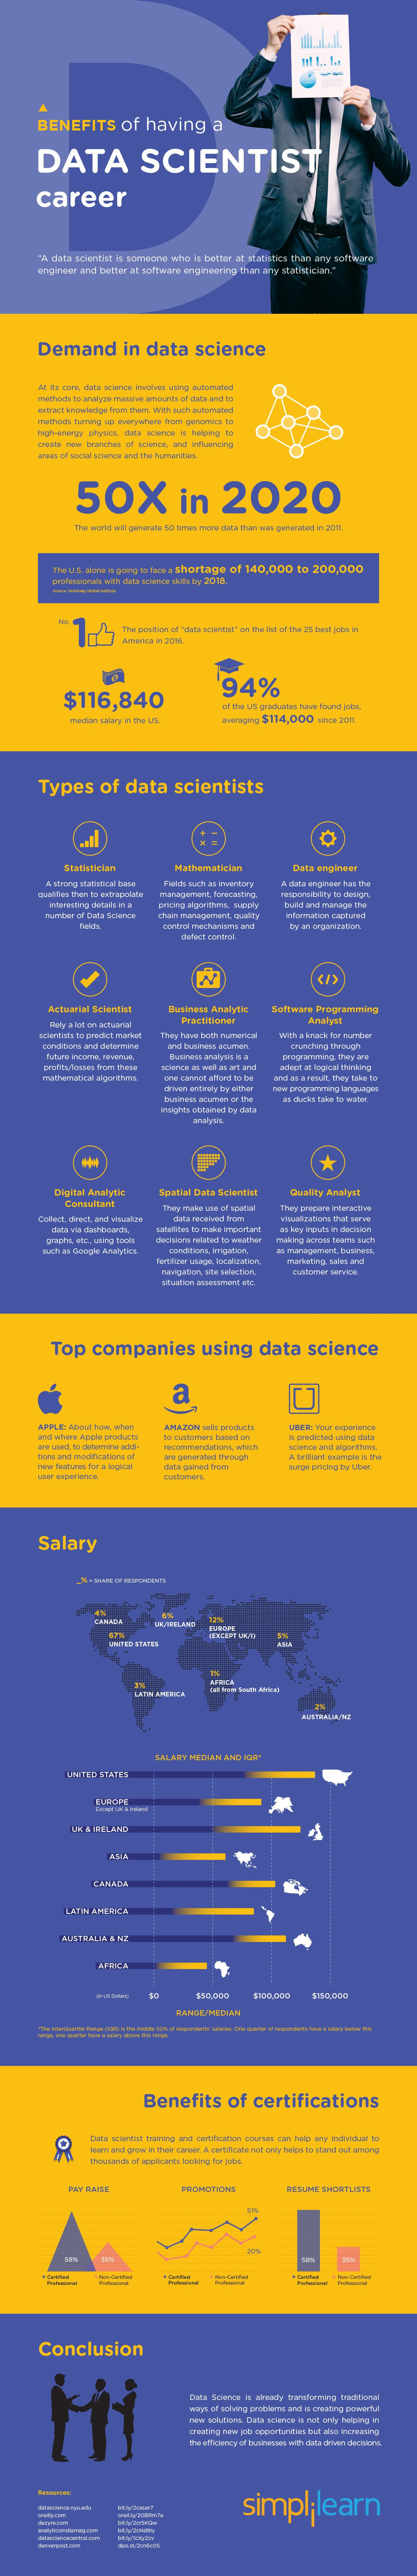 Benefits of having a career in data science - Data Science Central